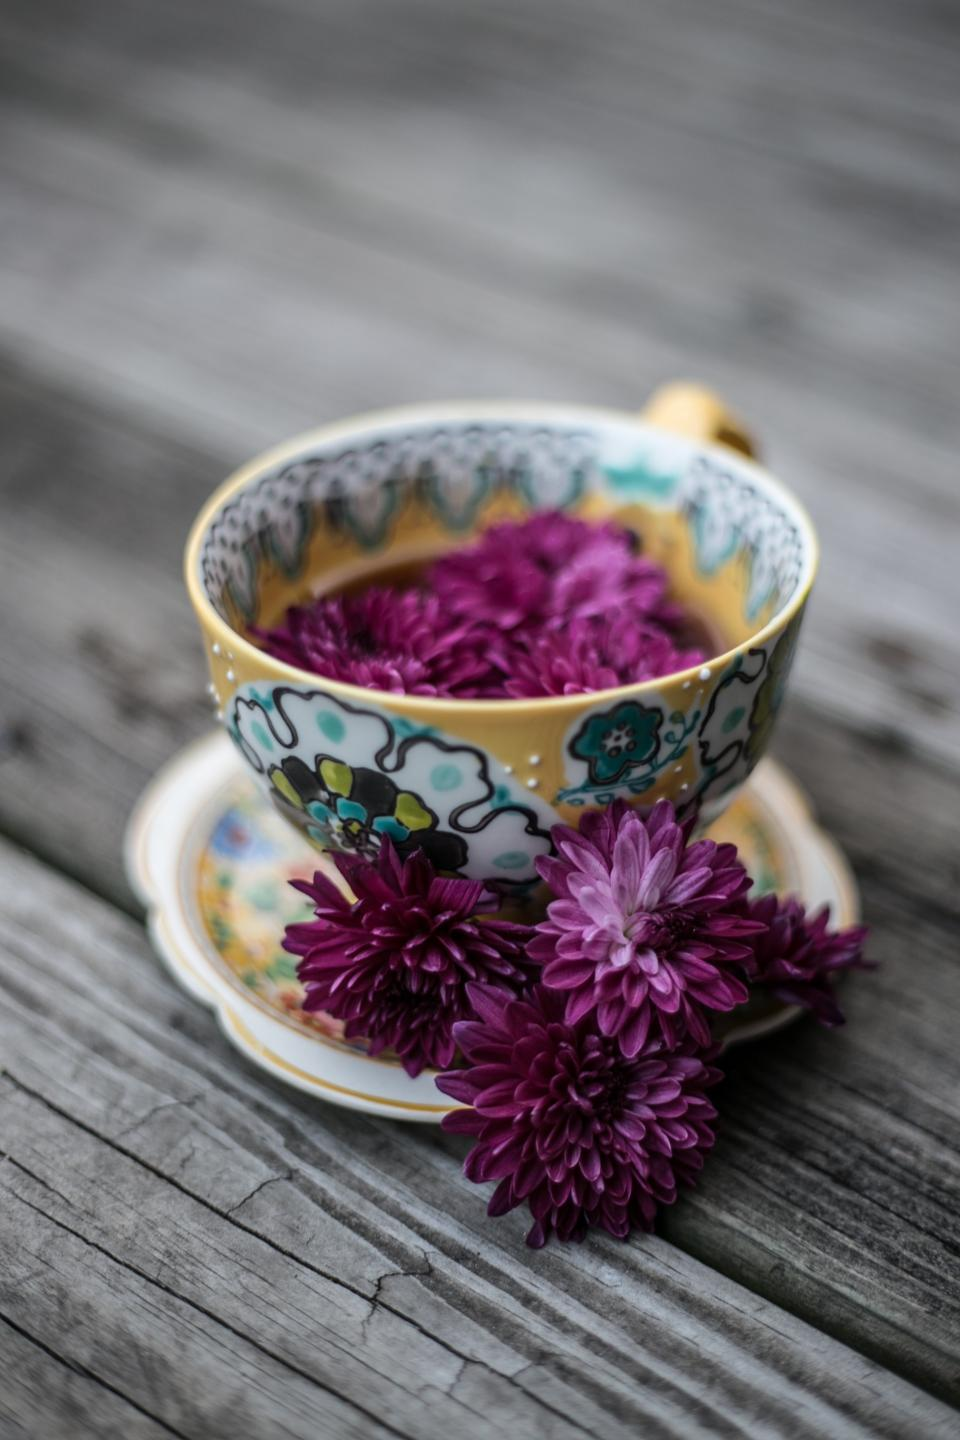 purple, violet, color, petal, flower, plate, bowl, wooden, table, blur